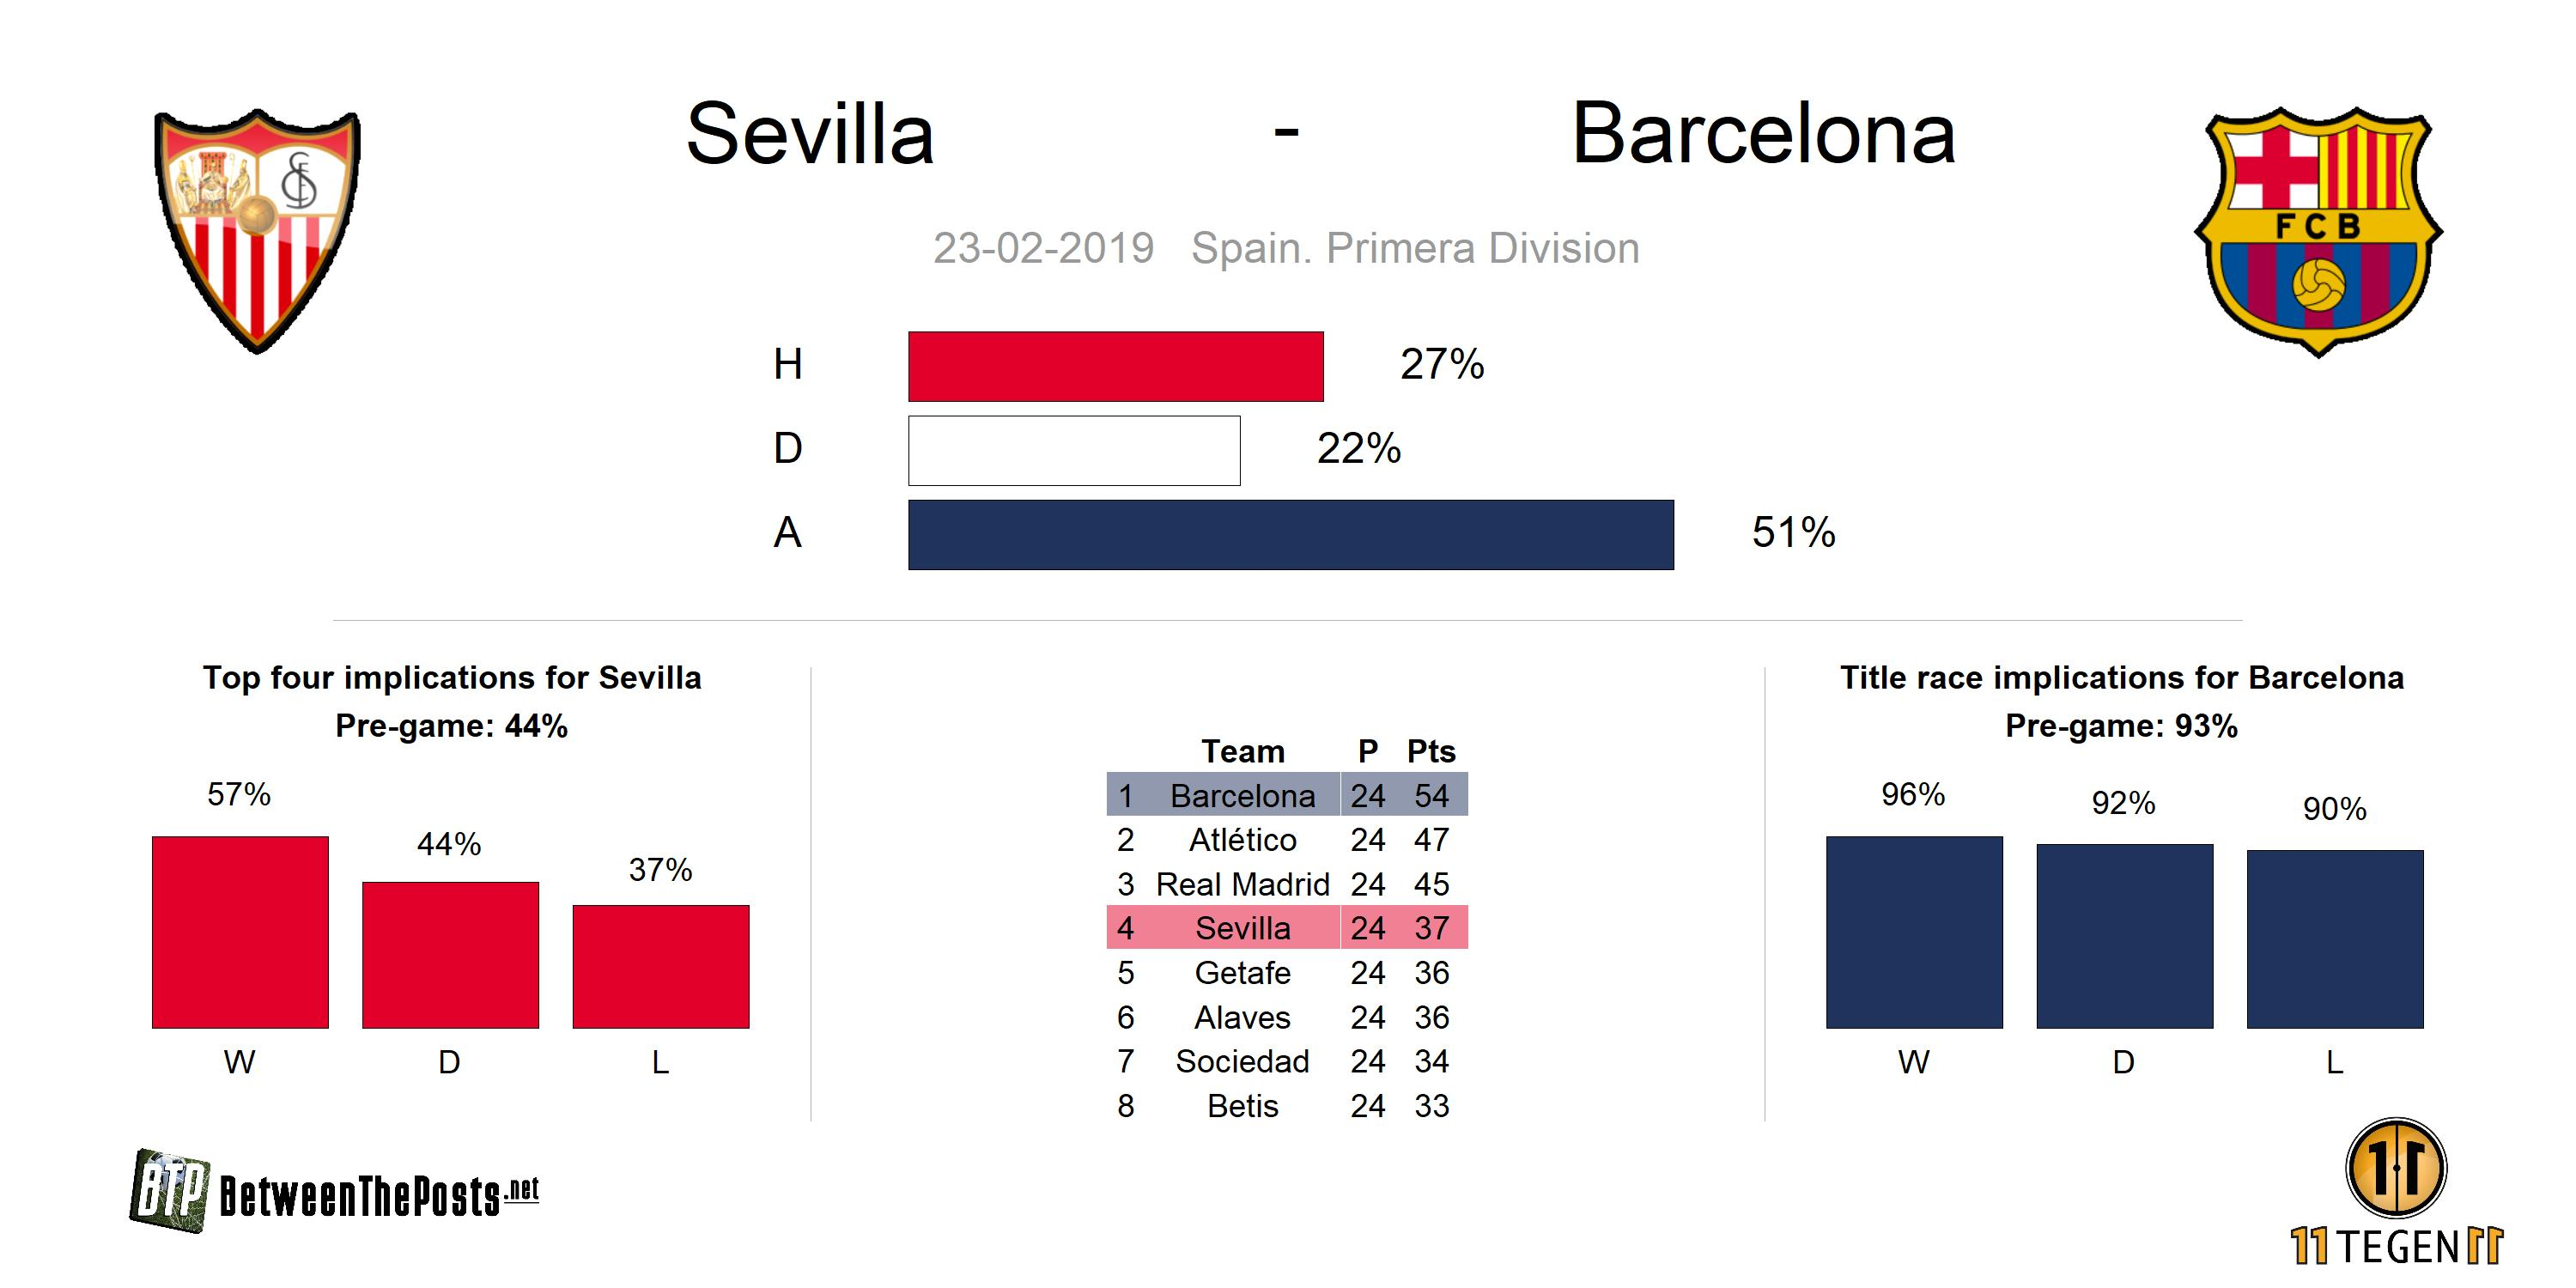 Preview Sevilla - Barcelona 2-4 LaLiga